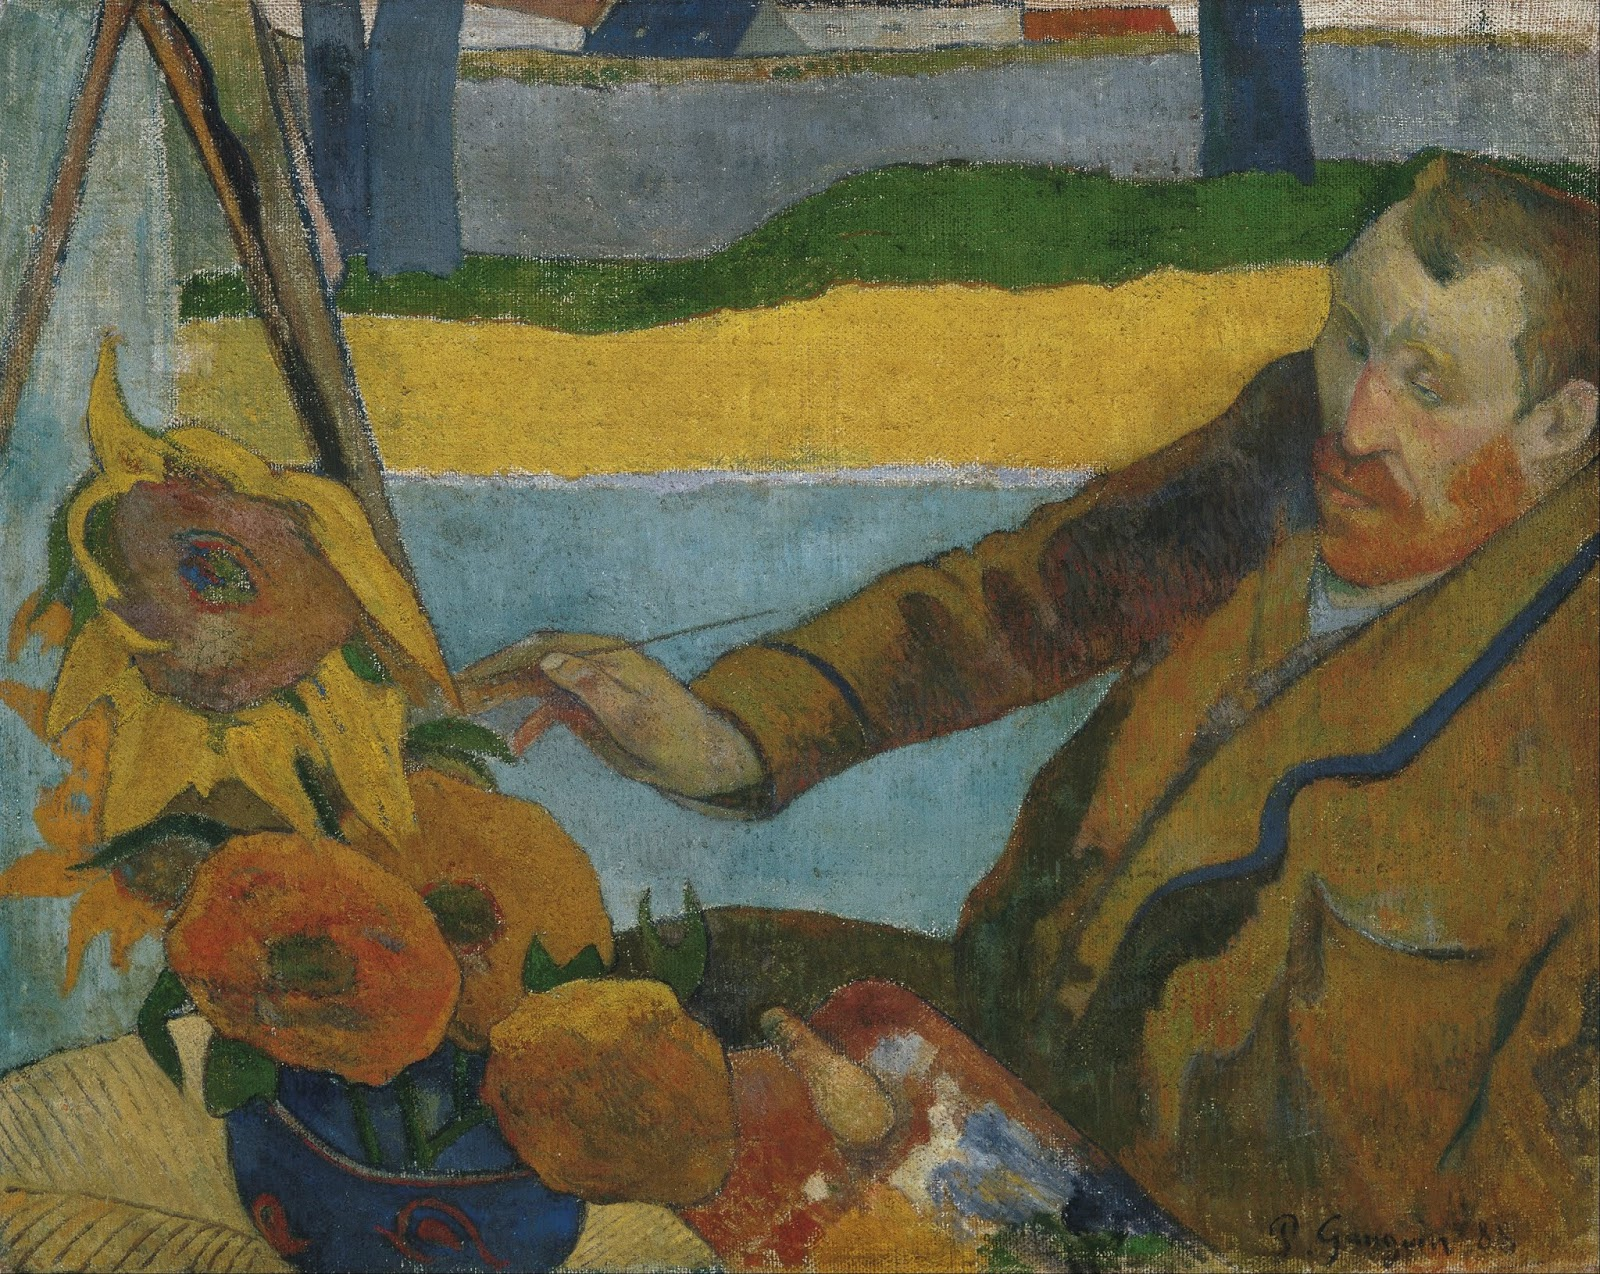 Vincent van Gogh painting sunflowers by Paul Gauguin, 1888